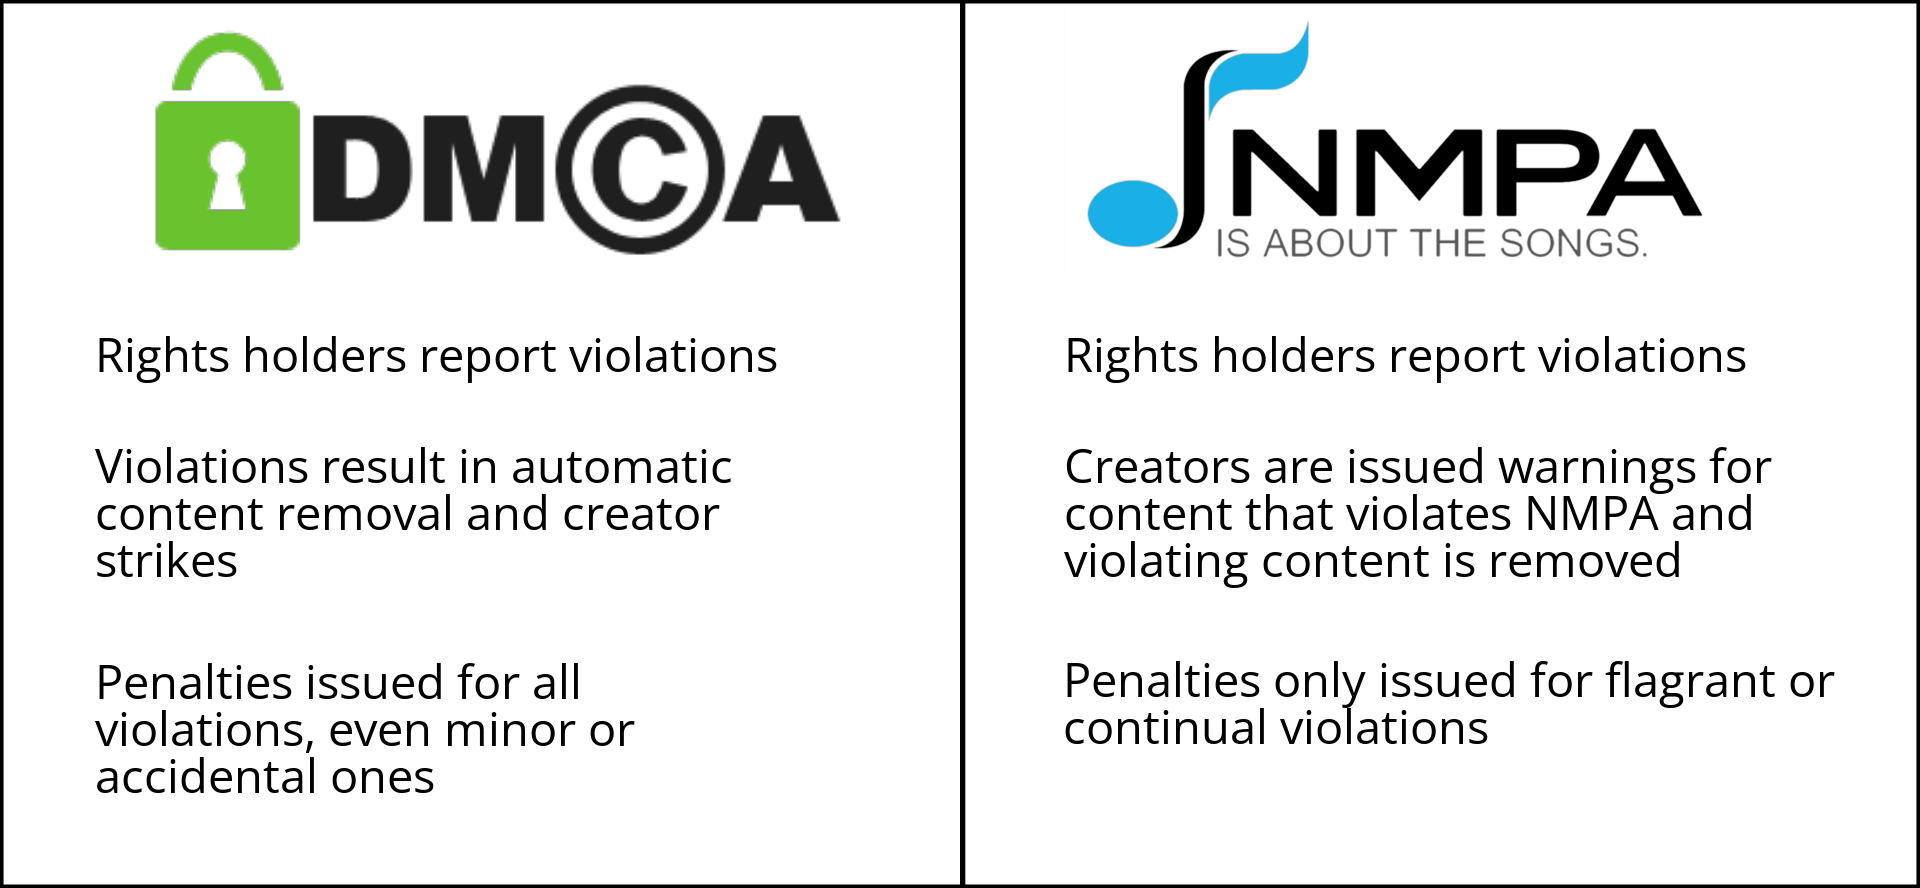 A side-by-side comparison of the old DMCA agreement and the new NMPA agreement.